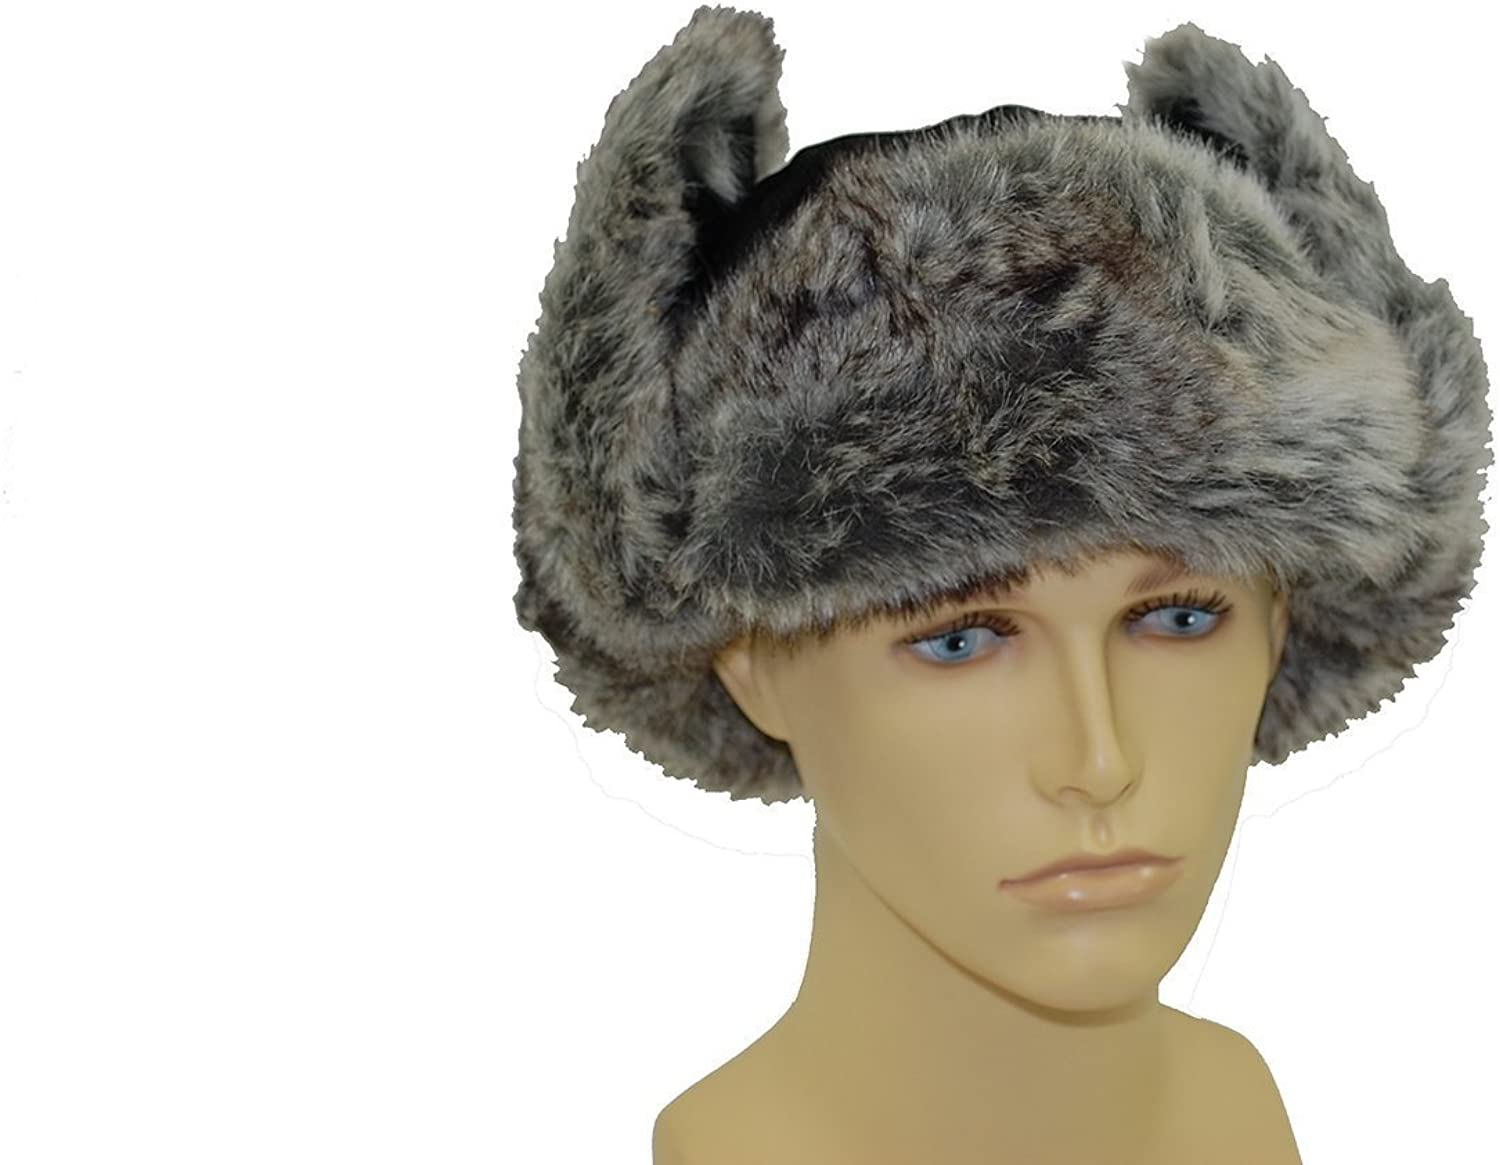 Trapper Hat with Faux Fur Trim 59cm Unisex Black Leather Style Ushanka